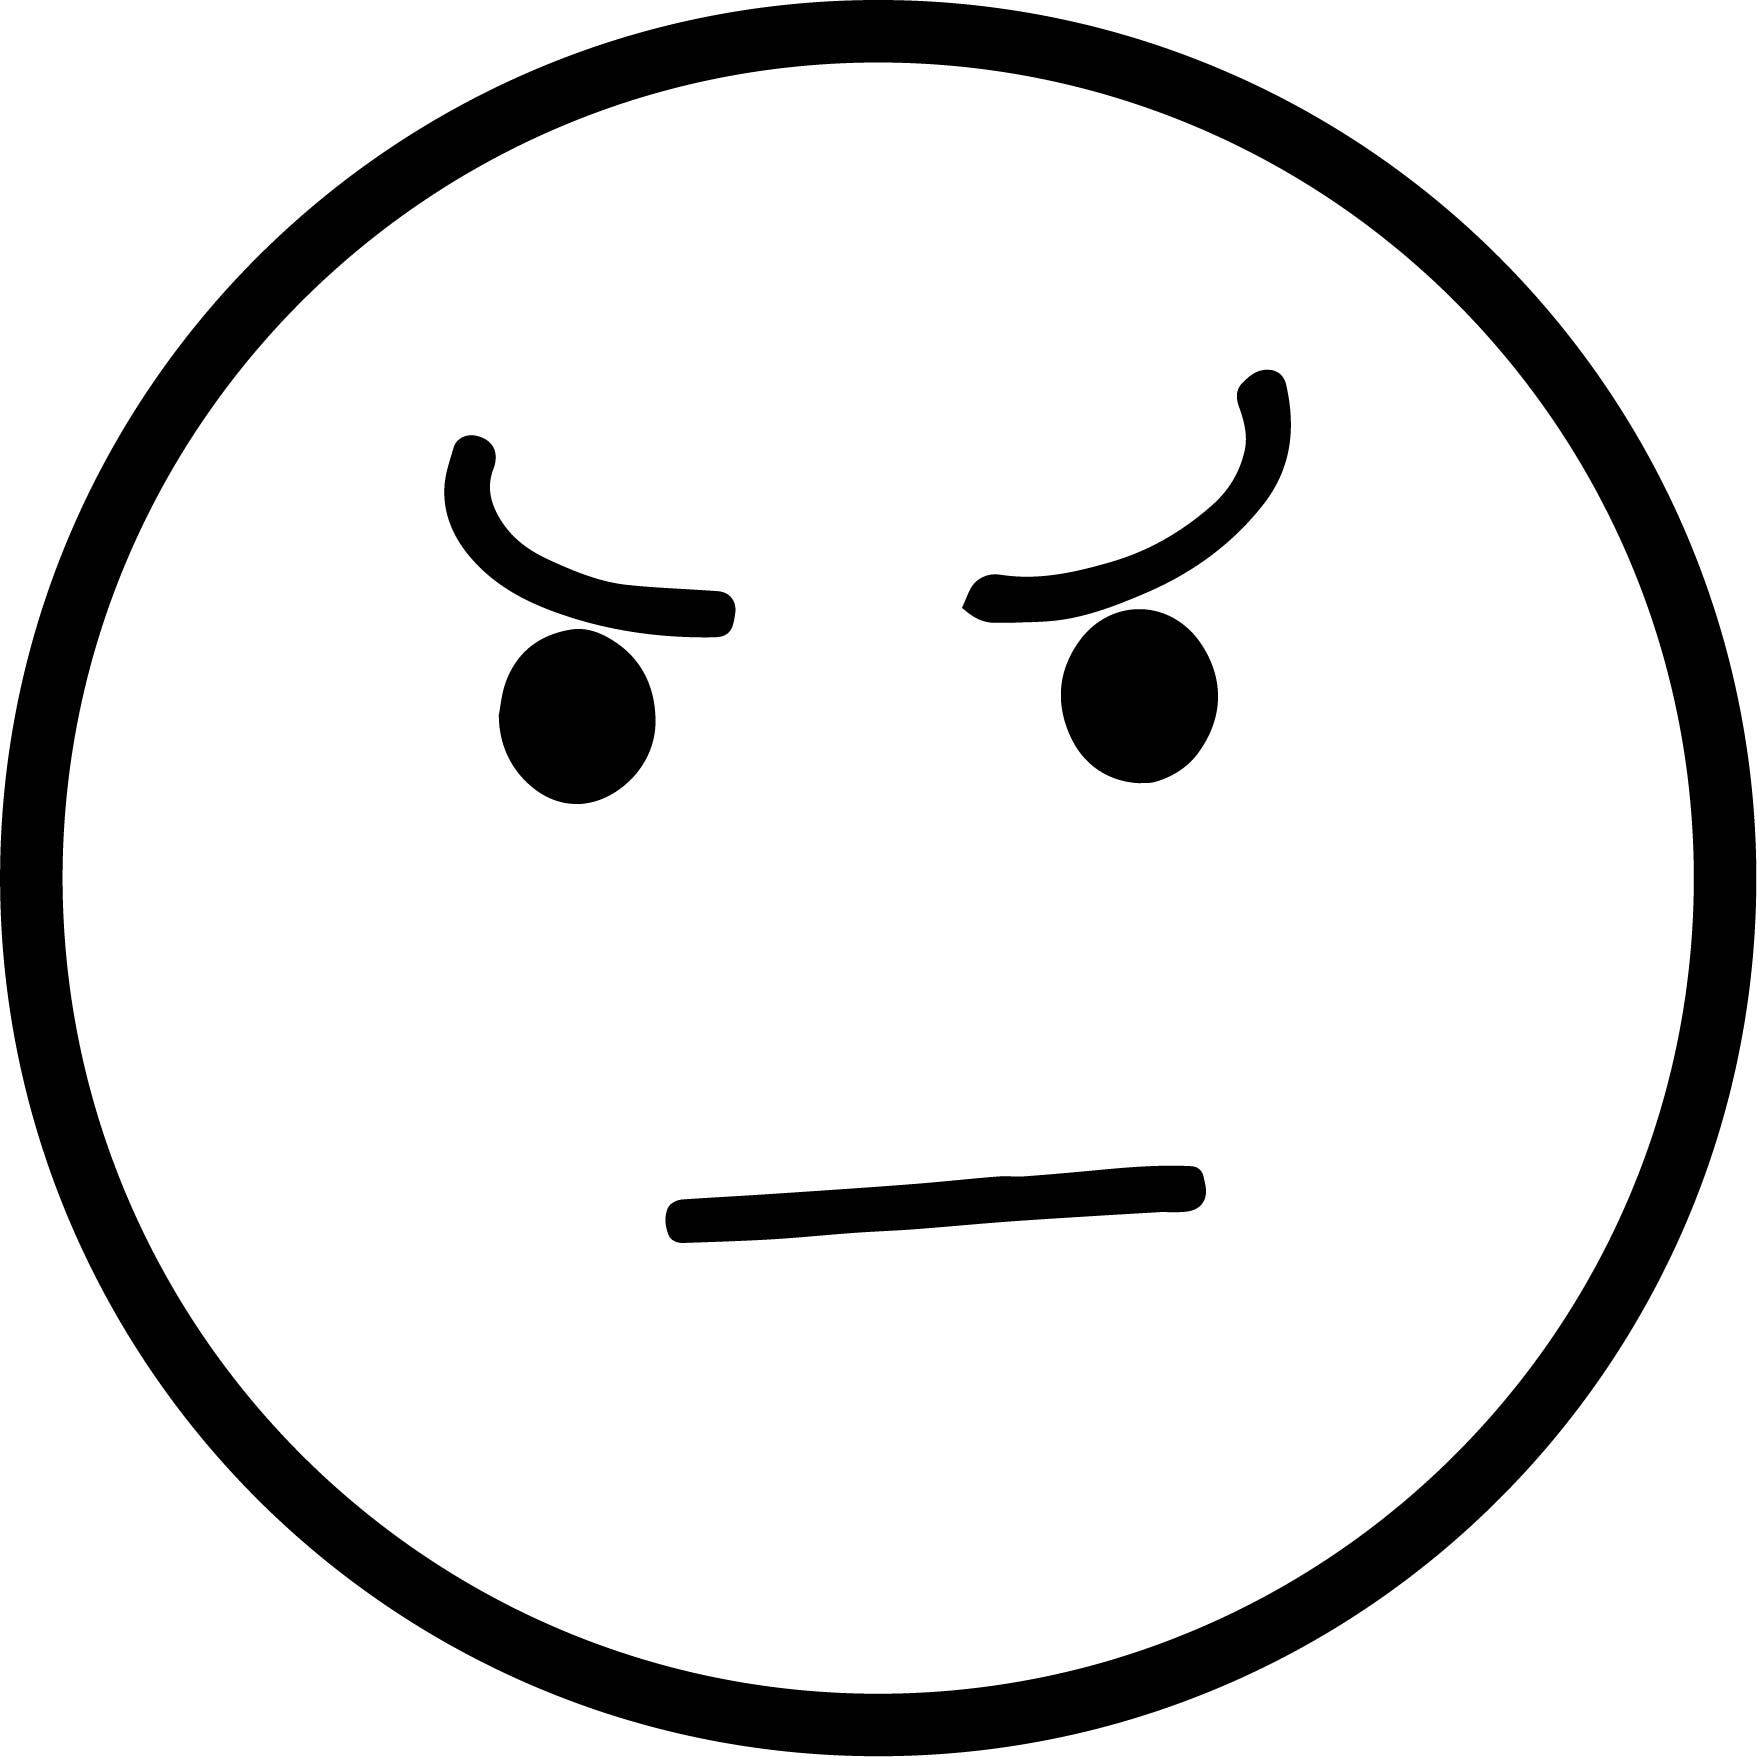 awesome What Angry Face Circle Coloring Page | Angry face ...